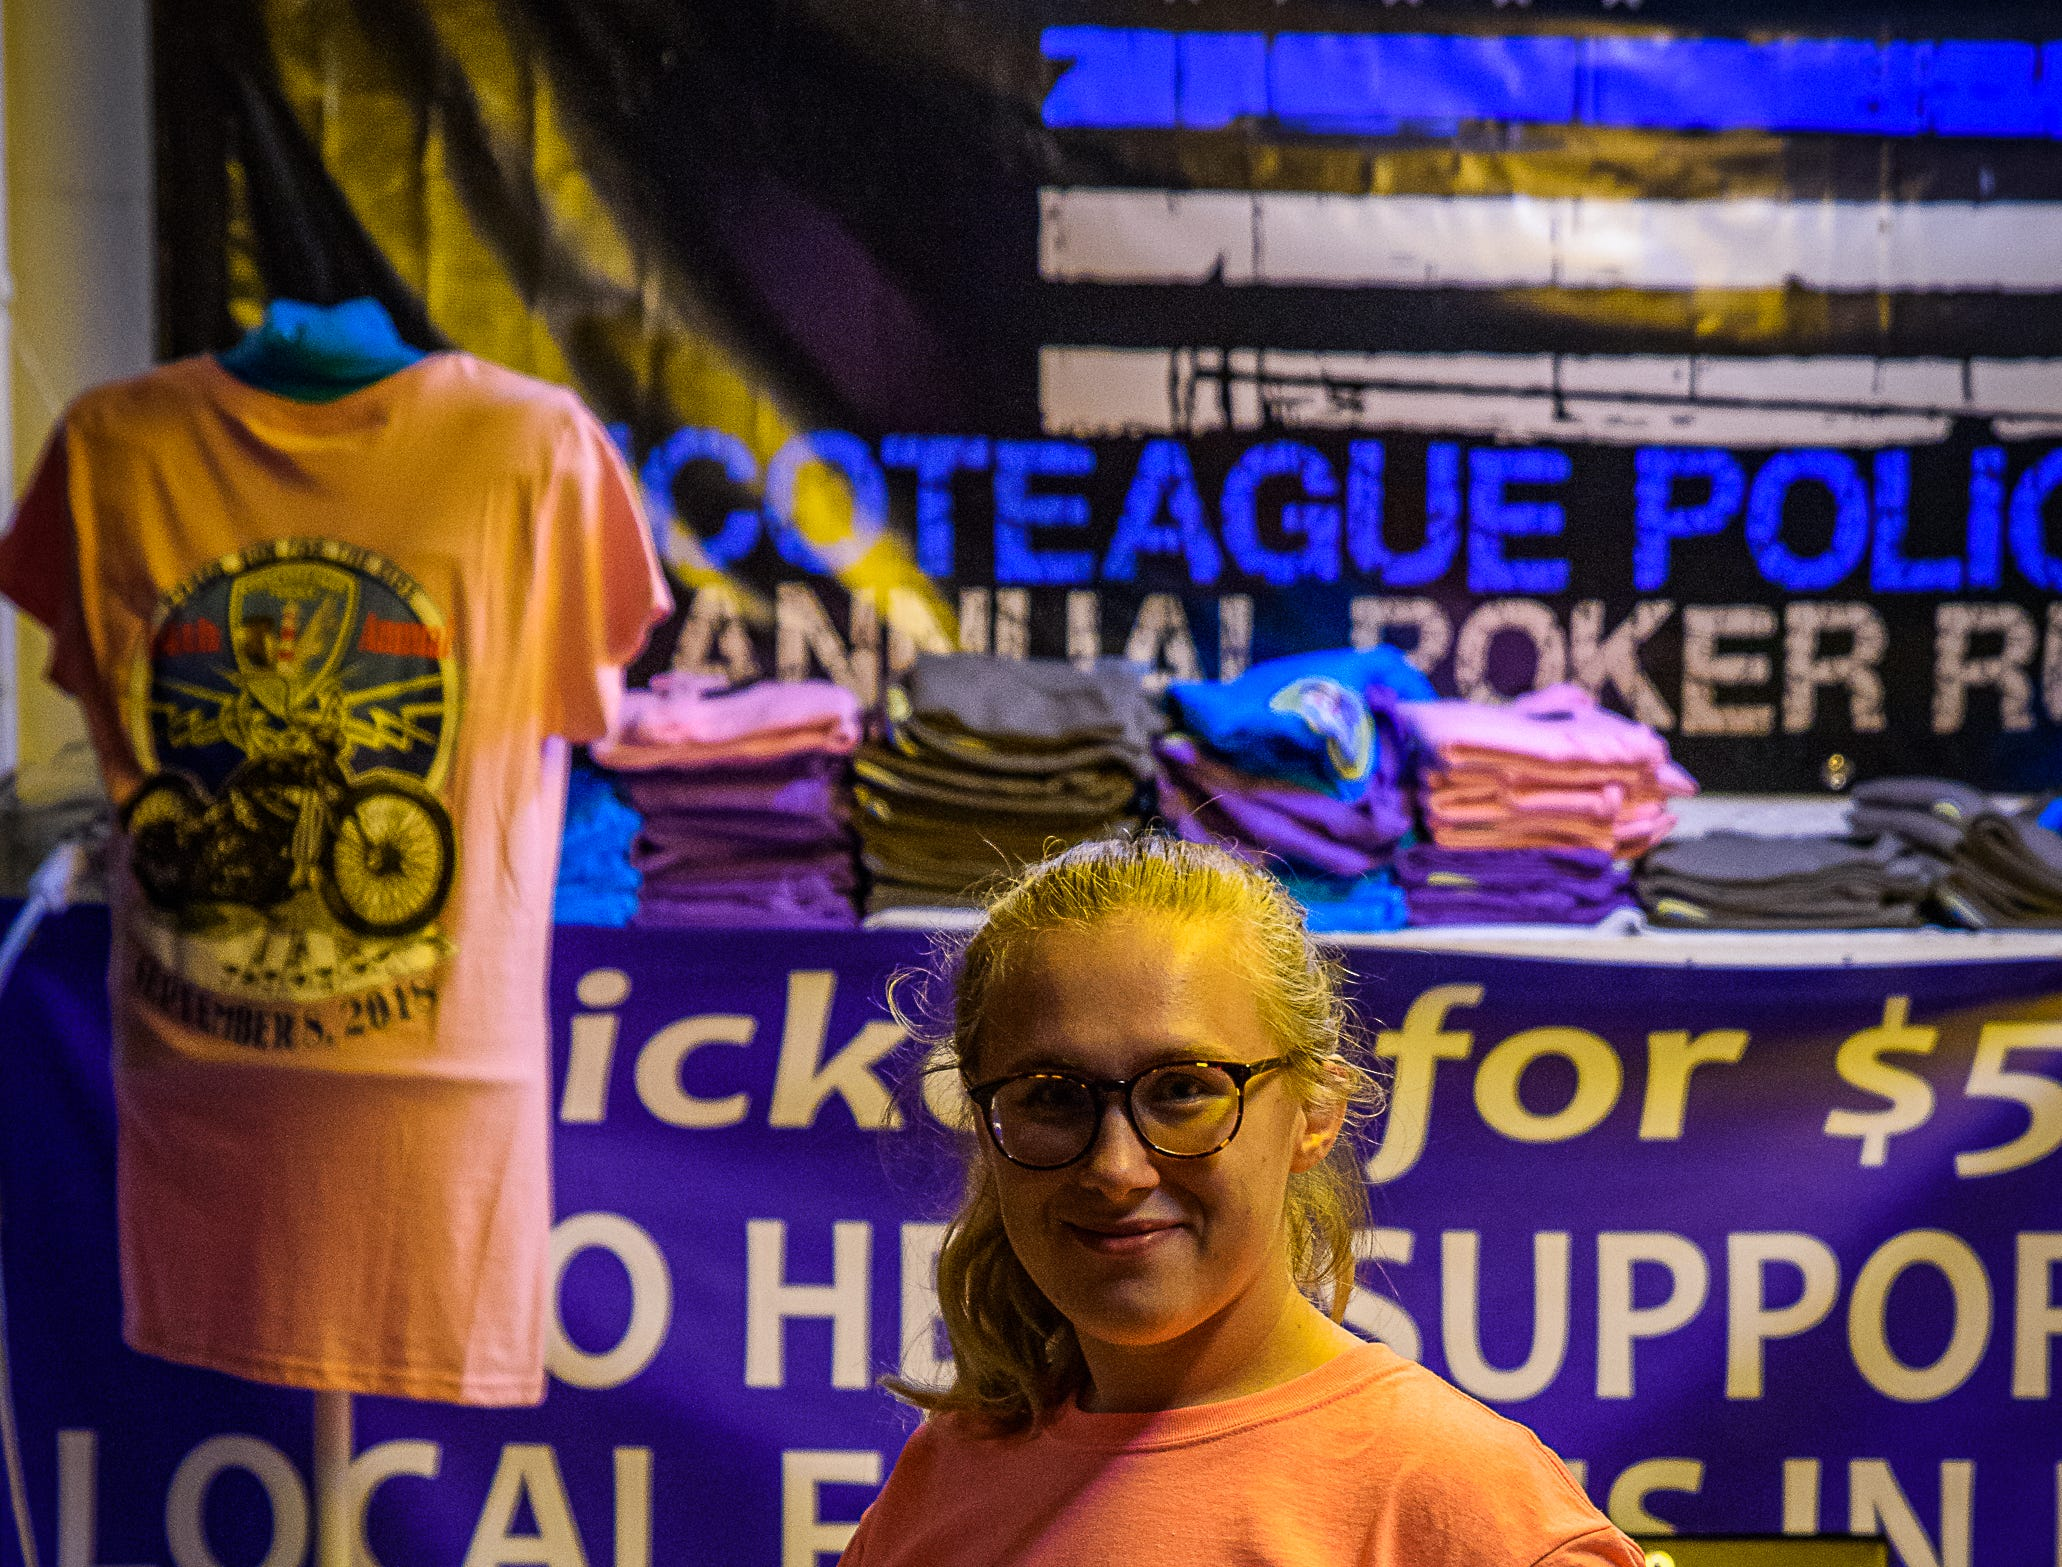 A volunteer at the both for the Chincoteague Police Department booth at the Chincoteague Fireman's Carnival.